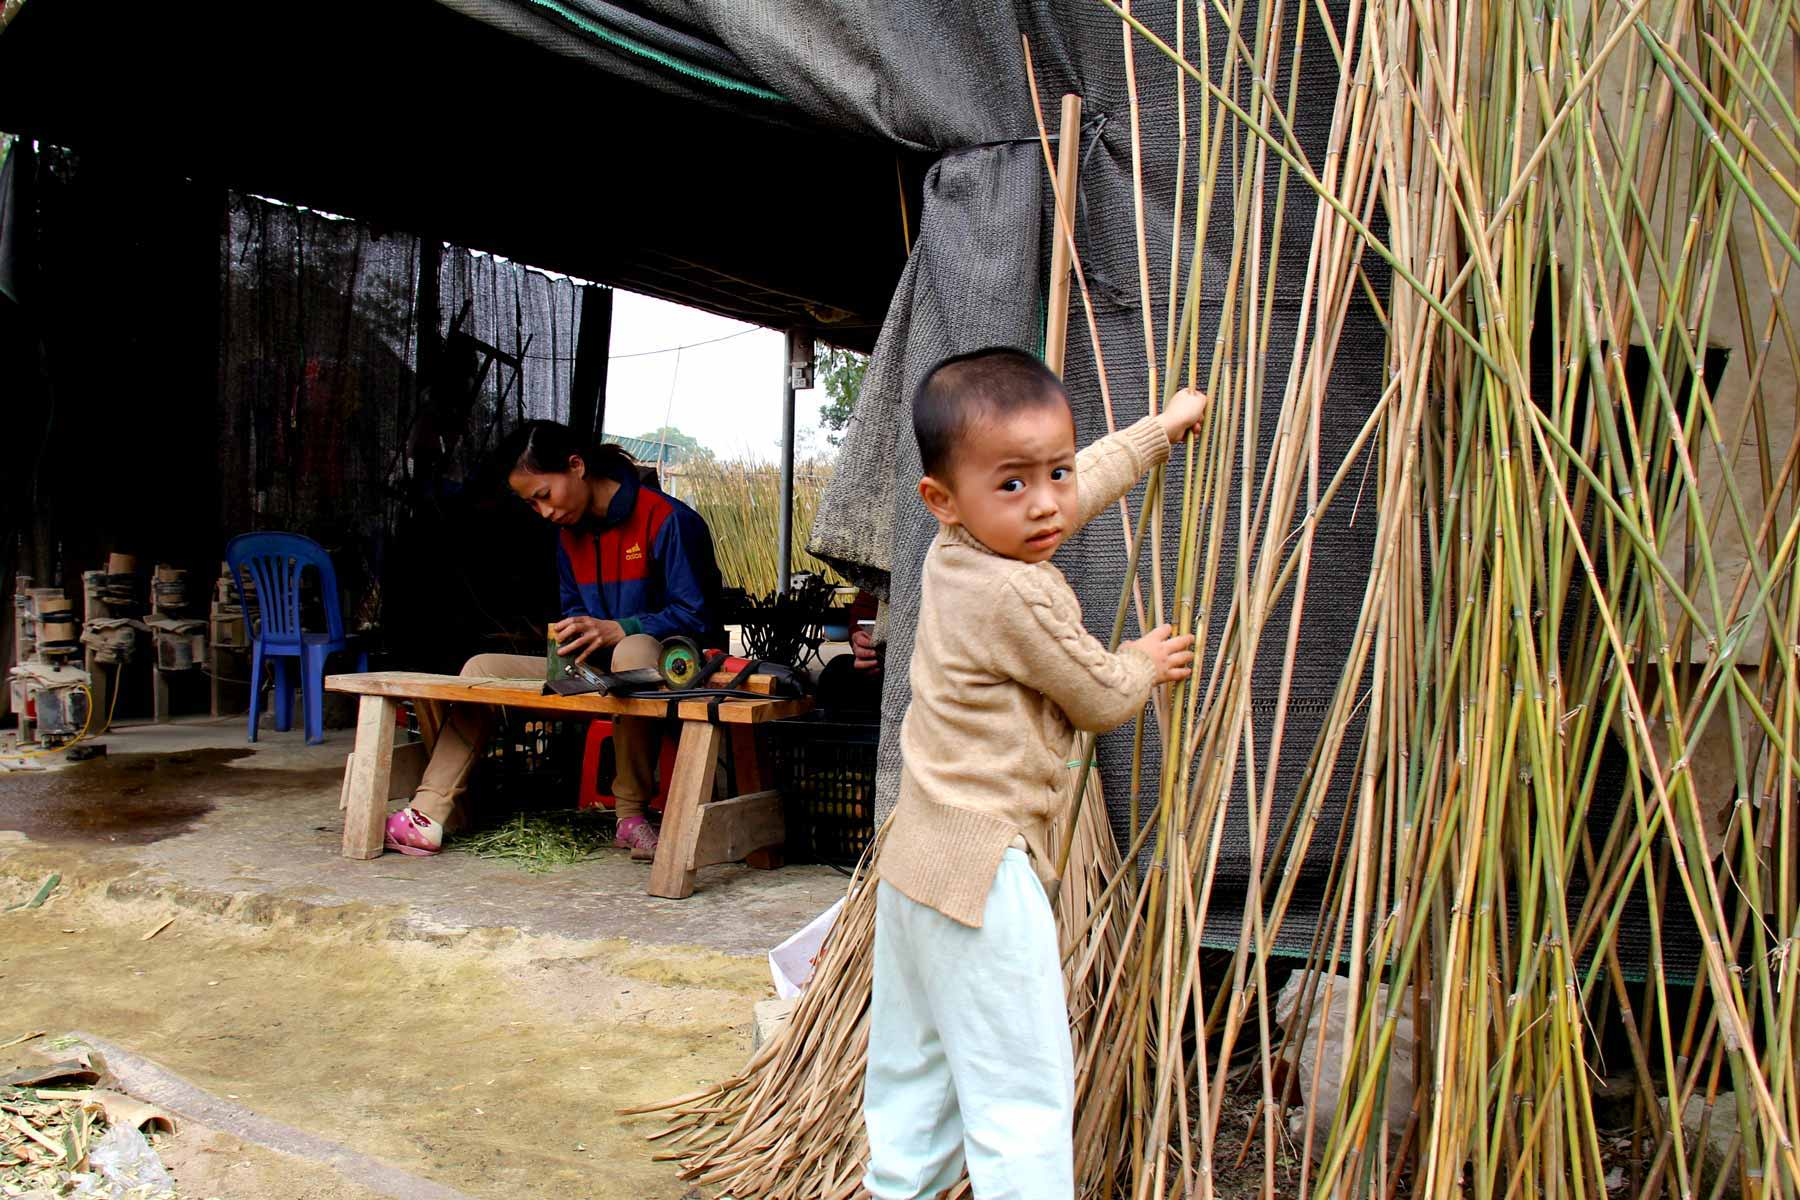 Child playing with bamboo stalks in Vietnam